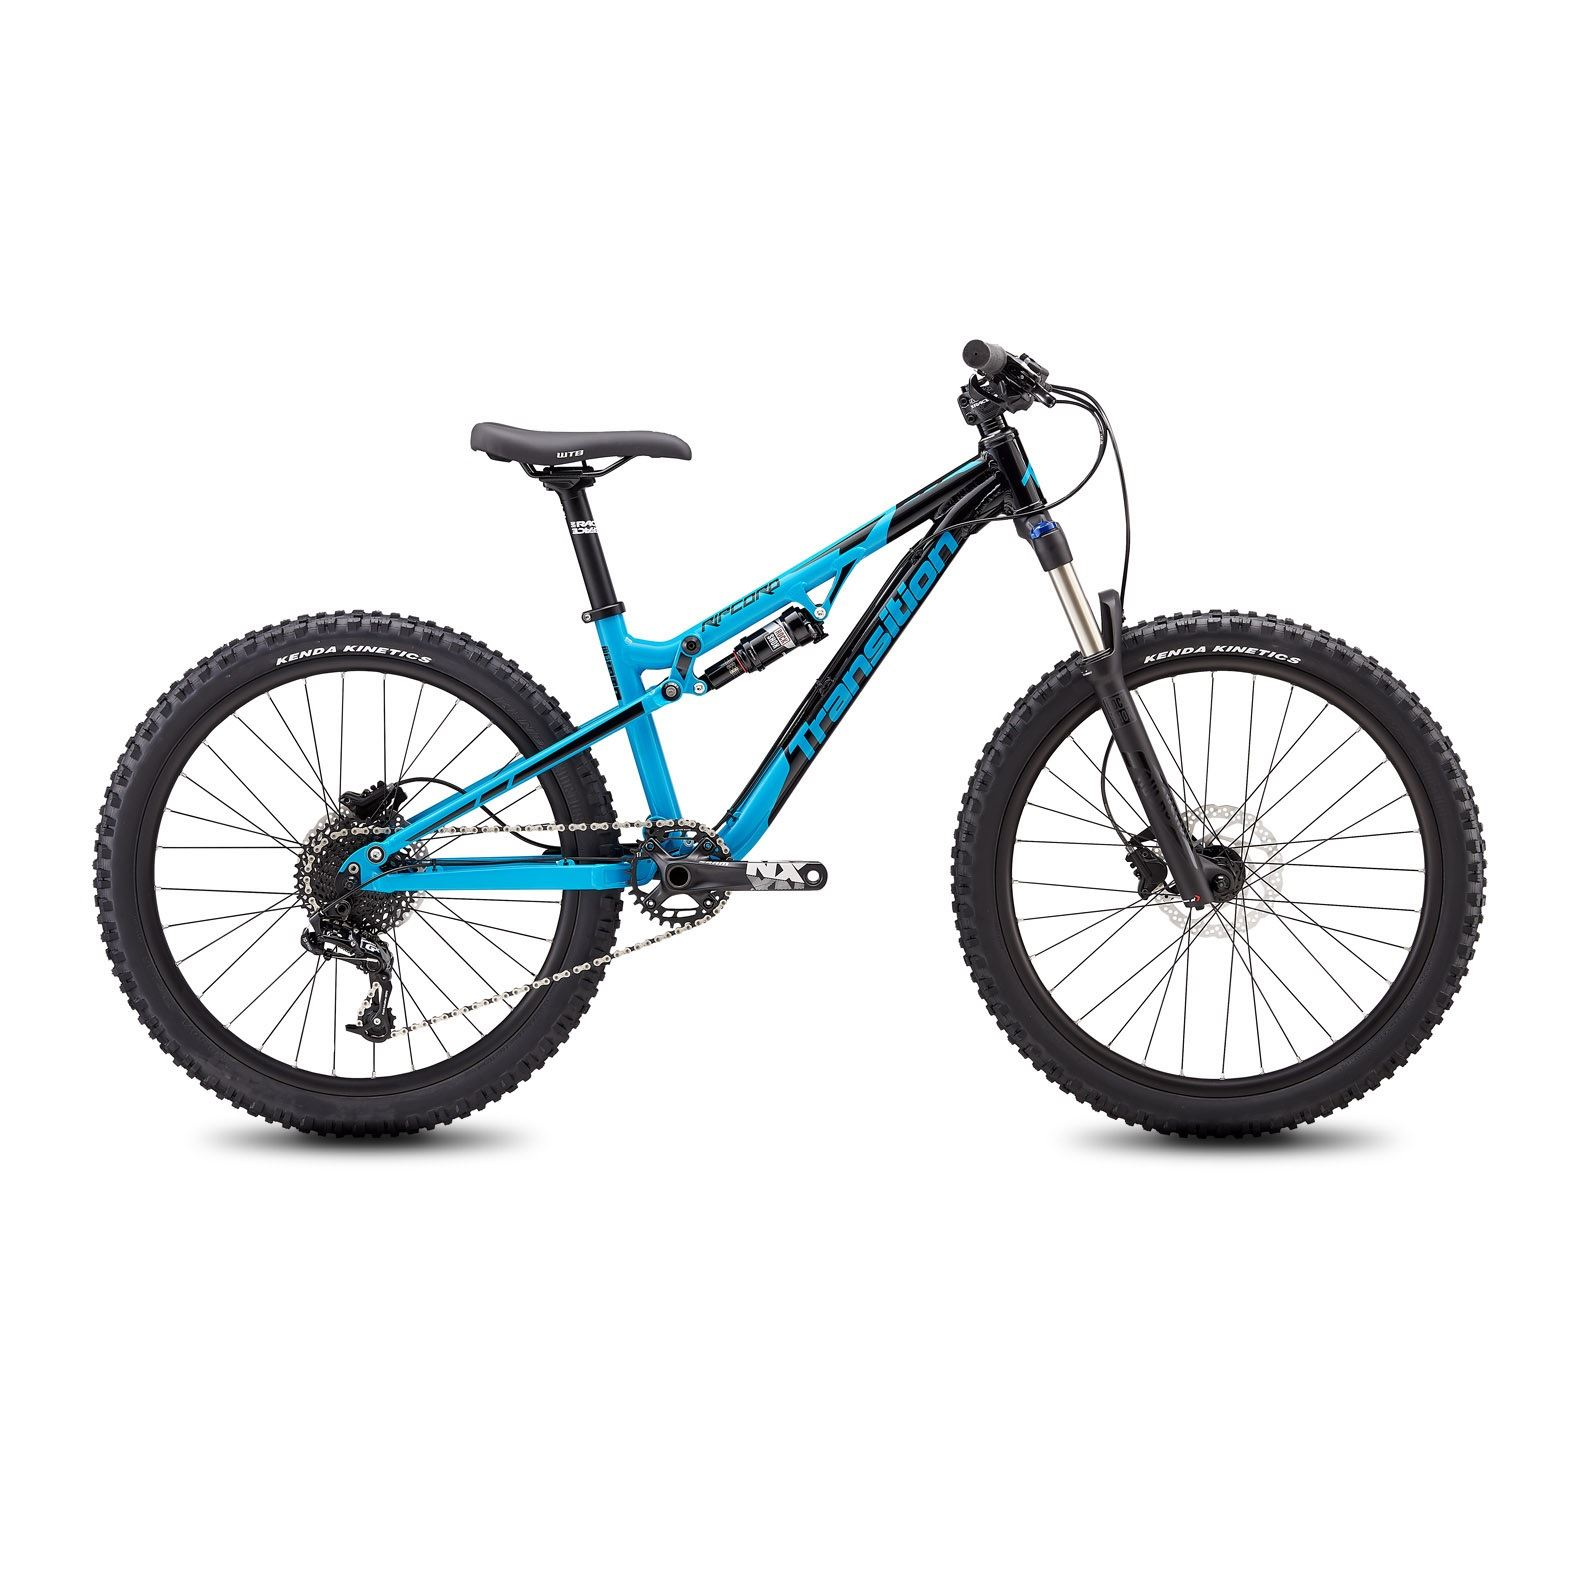 Trail Bike: Junior | Transition Ripcord 24